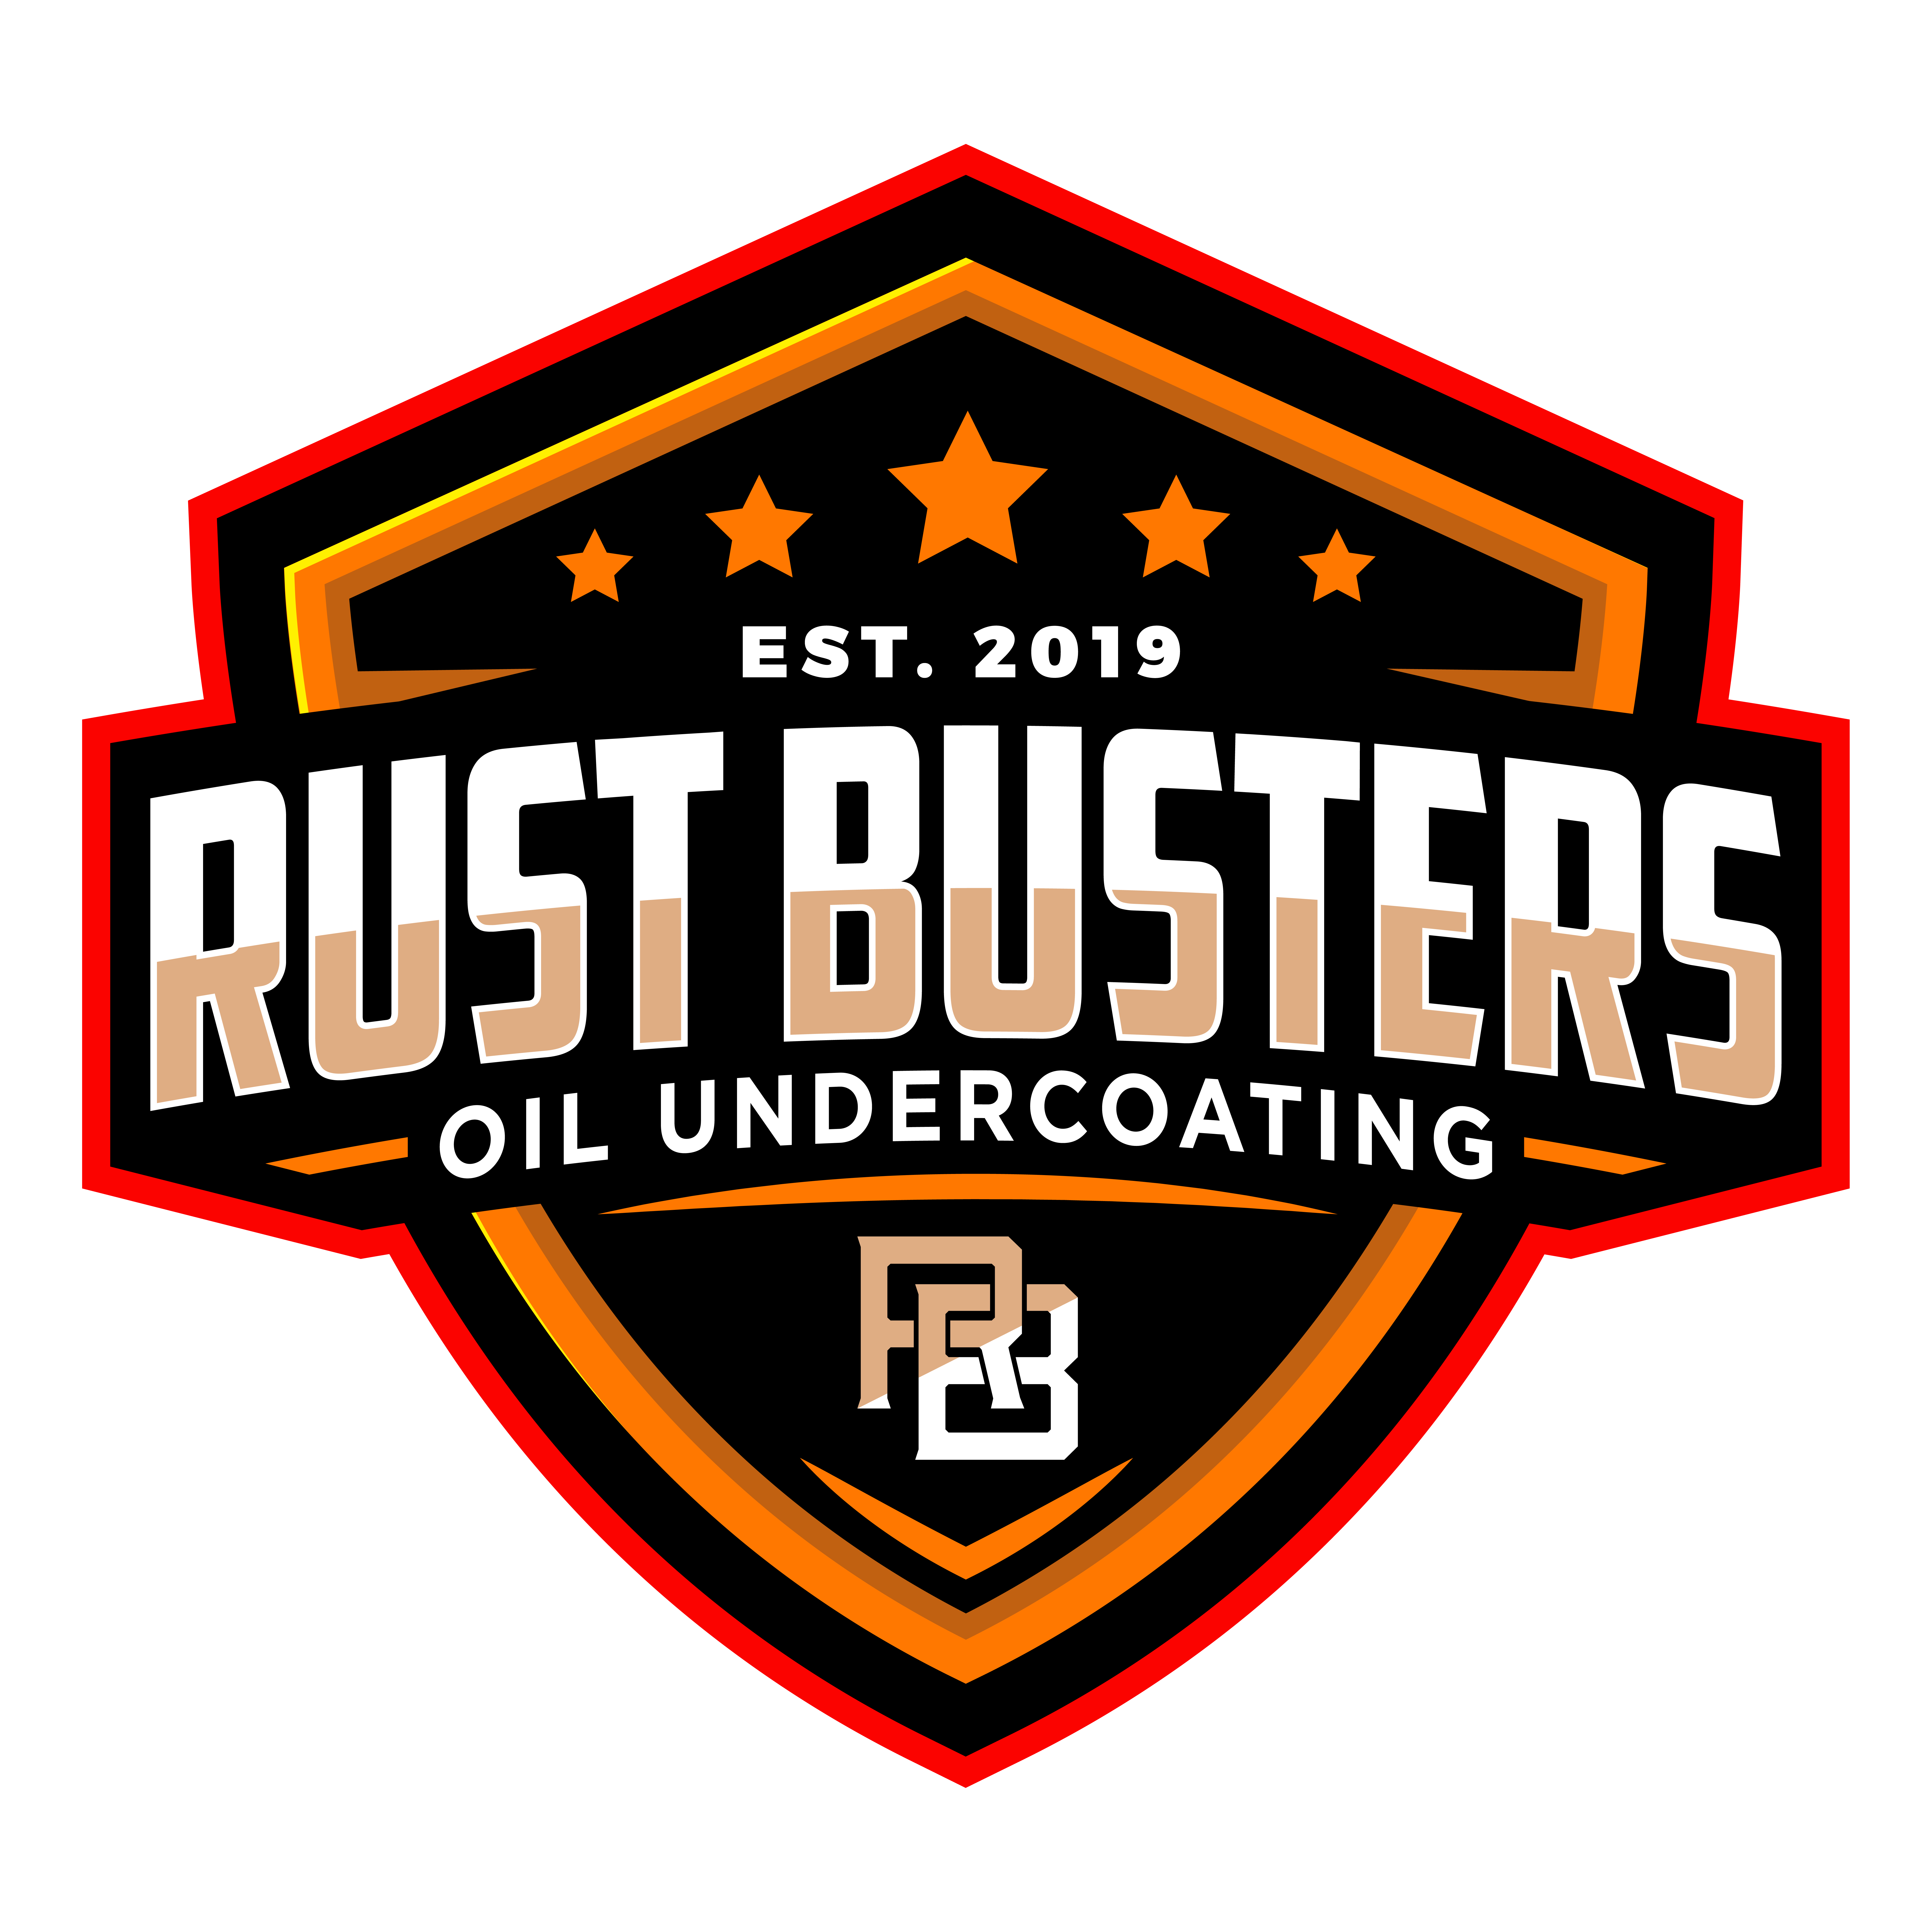 eye catching logo for vehicle rust  prevention and undercoating